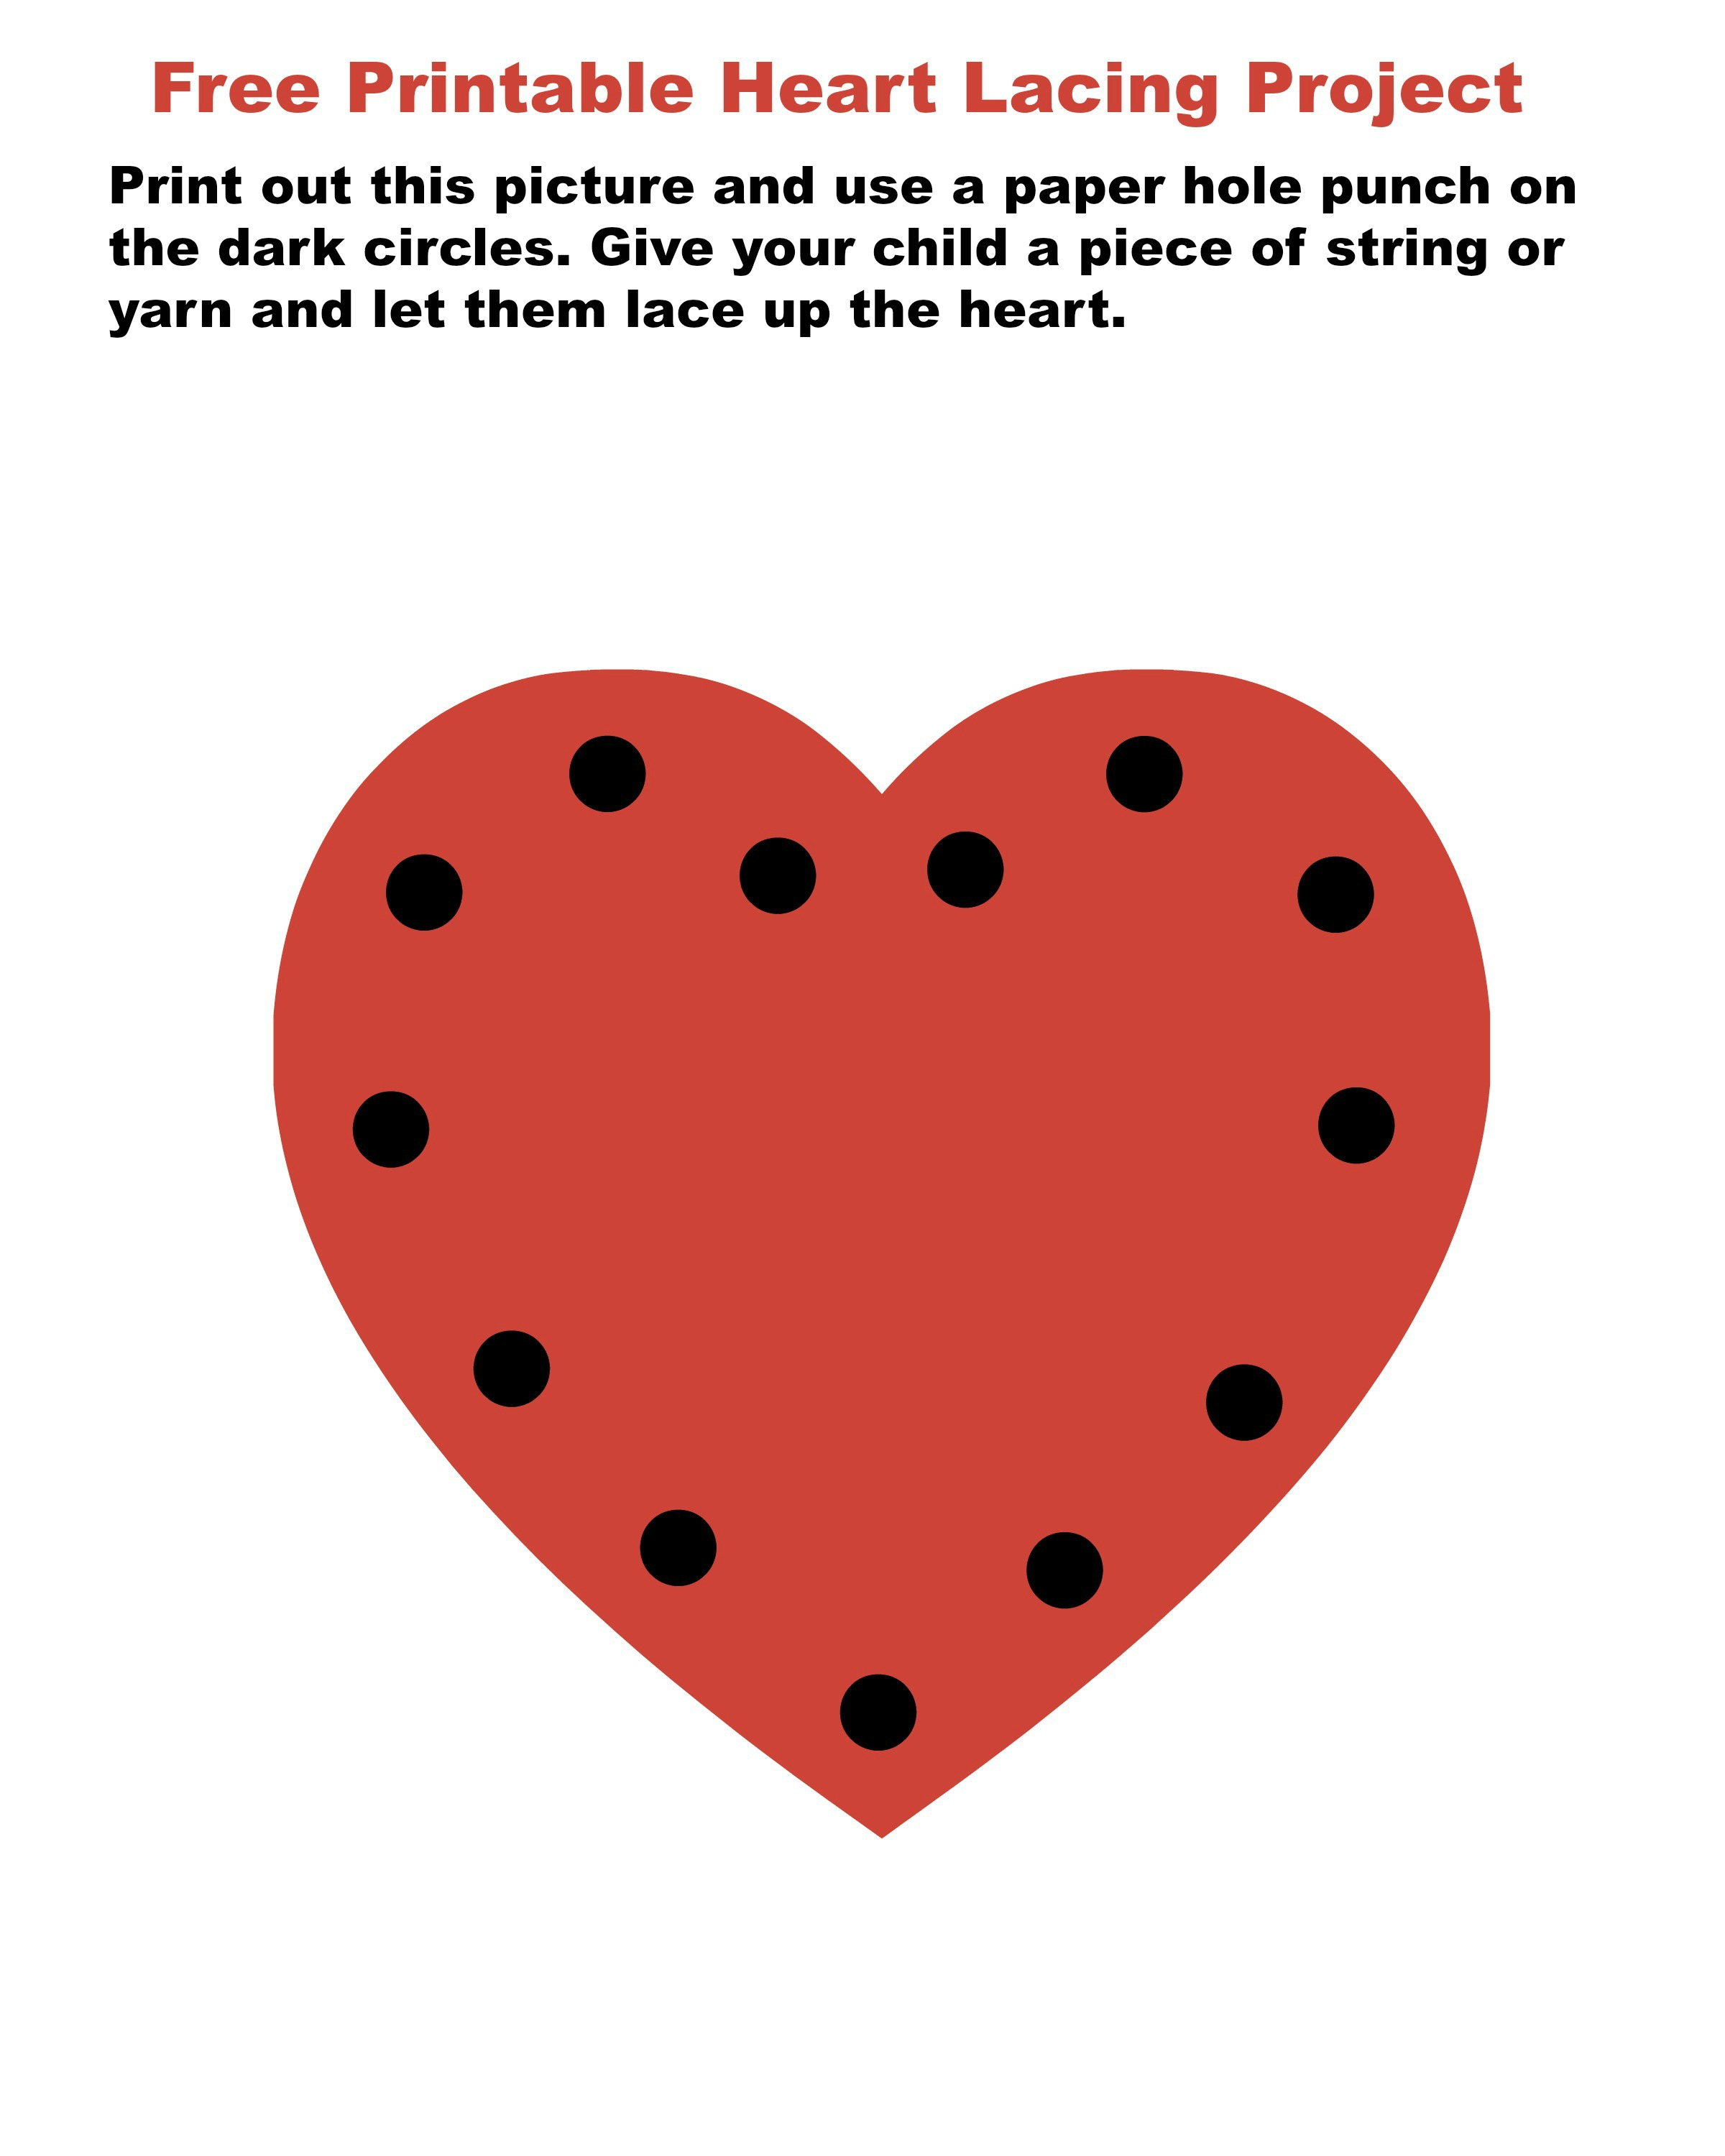 Free Printable Heart Lacing Card for Kids - jenny at dapperhouse